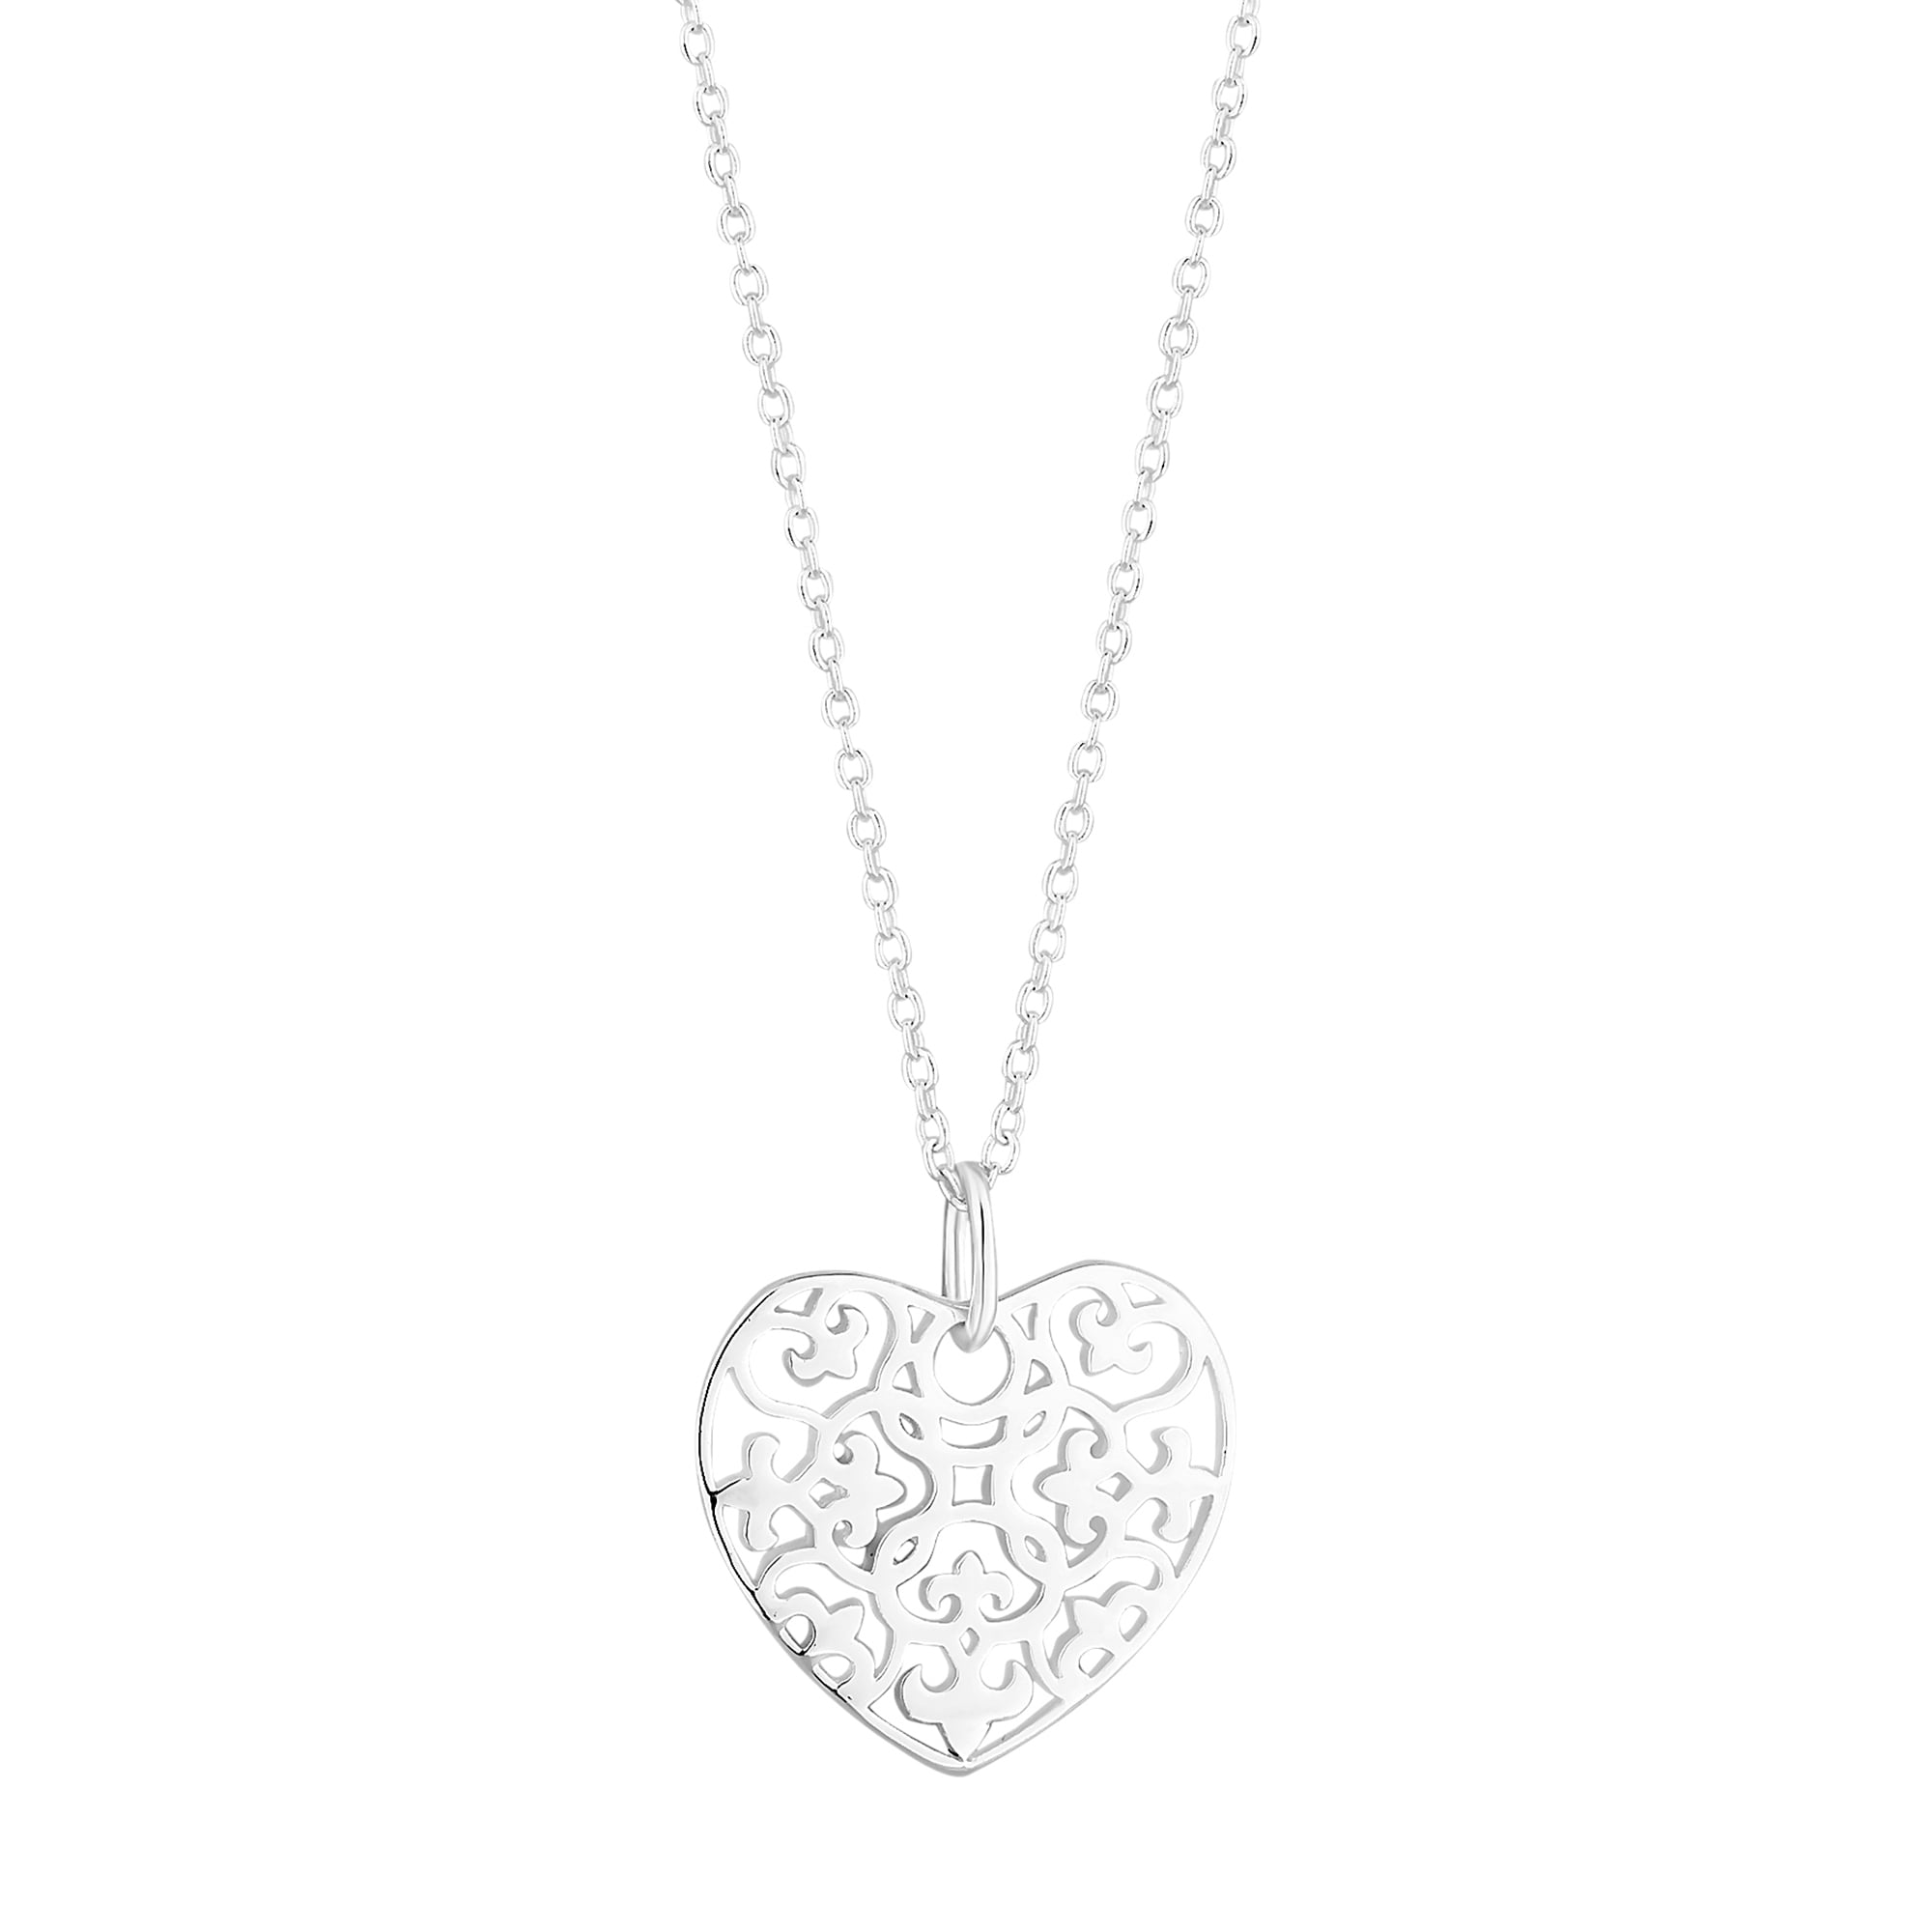 Simply silver sterling silver filigree heart pendant necklace sale sterling silver filigree heart pendant necklace aloadofball Gallery